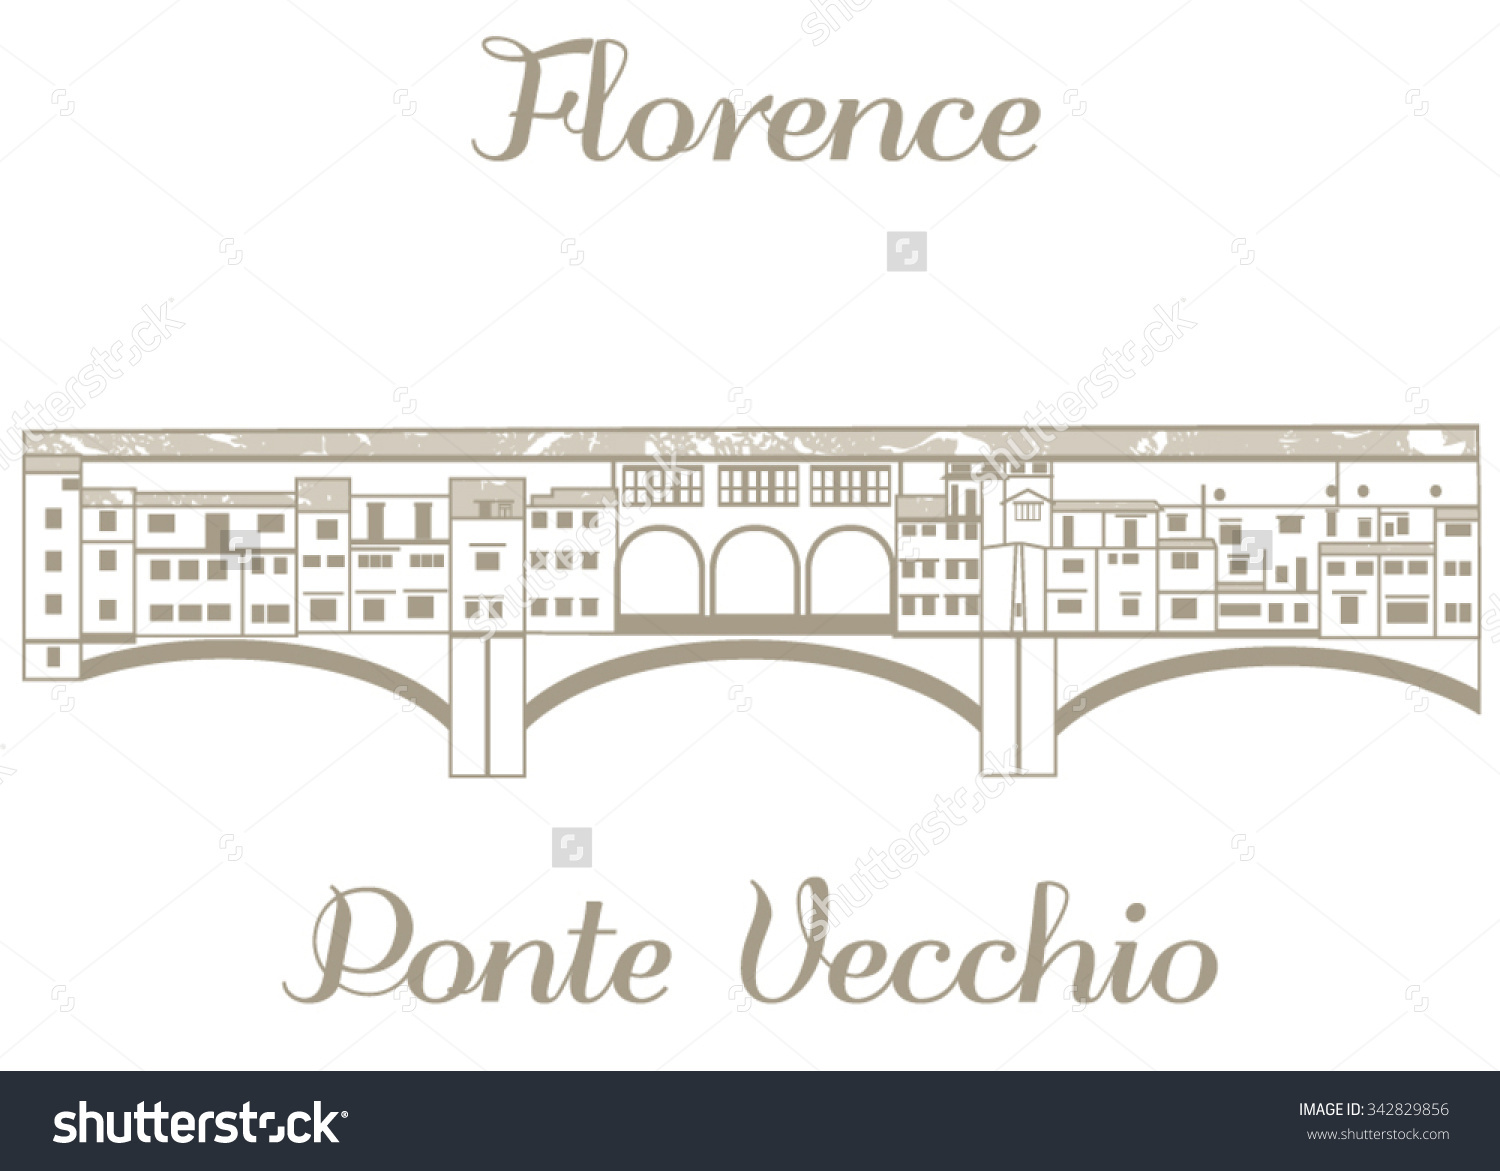 Vector Handdrawn Illustration Ponte Vecchio Stock Vector 342829856.